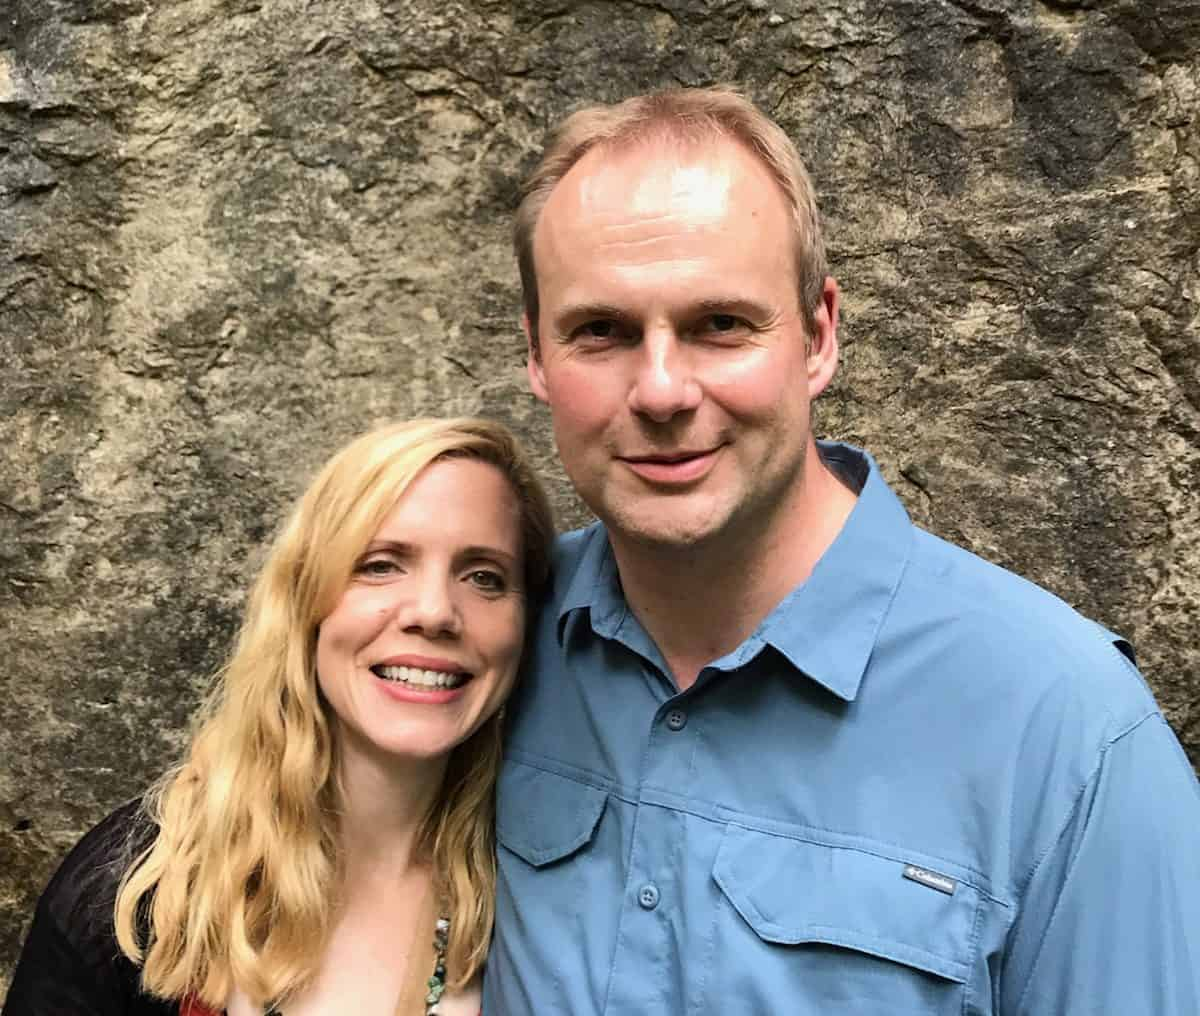 Gemma and Fredrik Sandberg. Founders of The Well, a gospel-centered website housing video life stories of people transformed through receiving Jesus Christ into their life